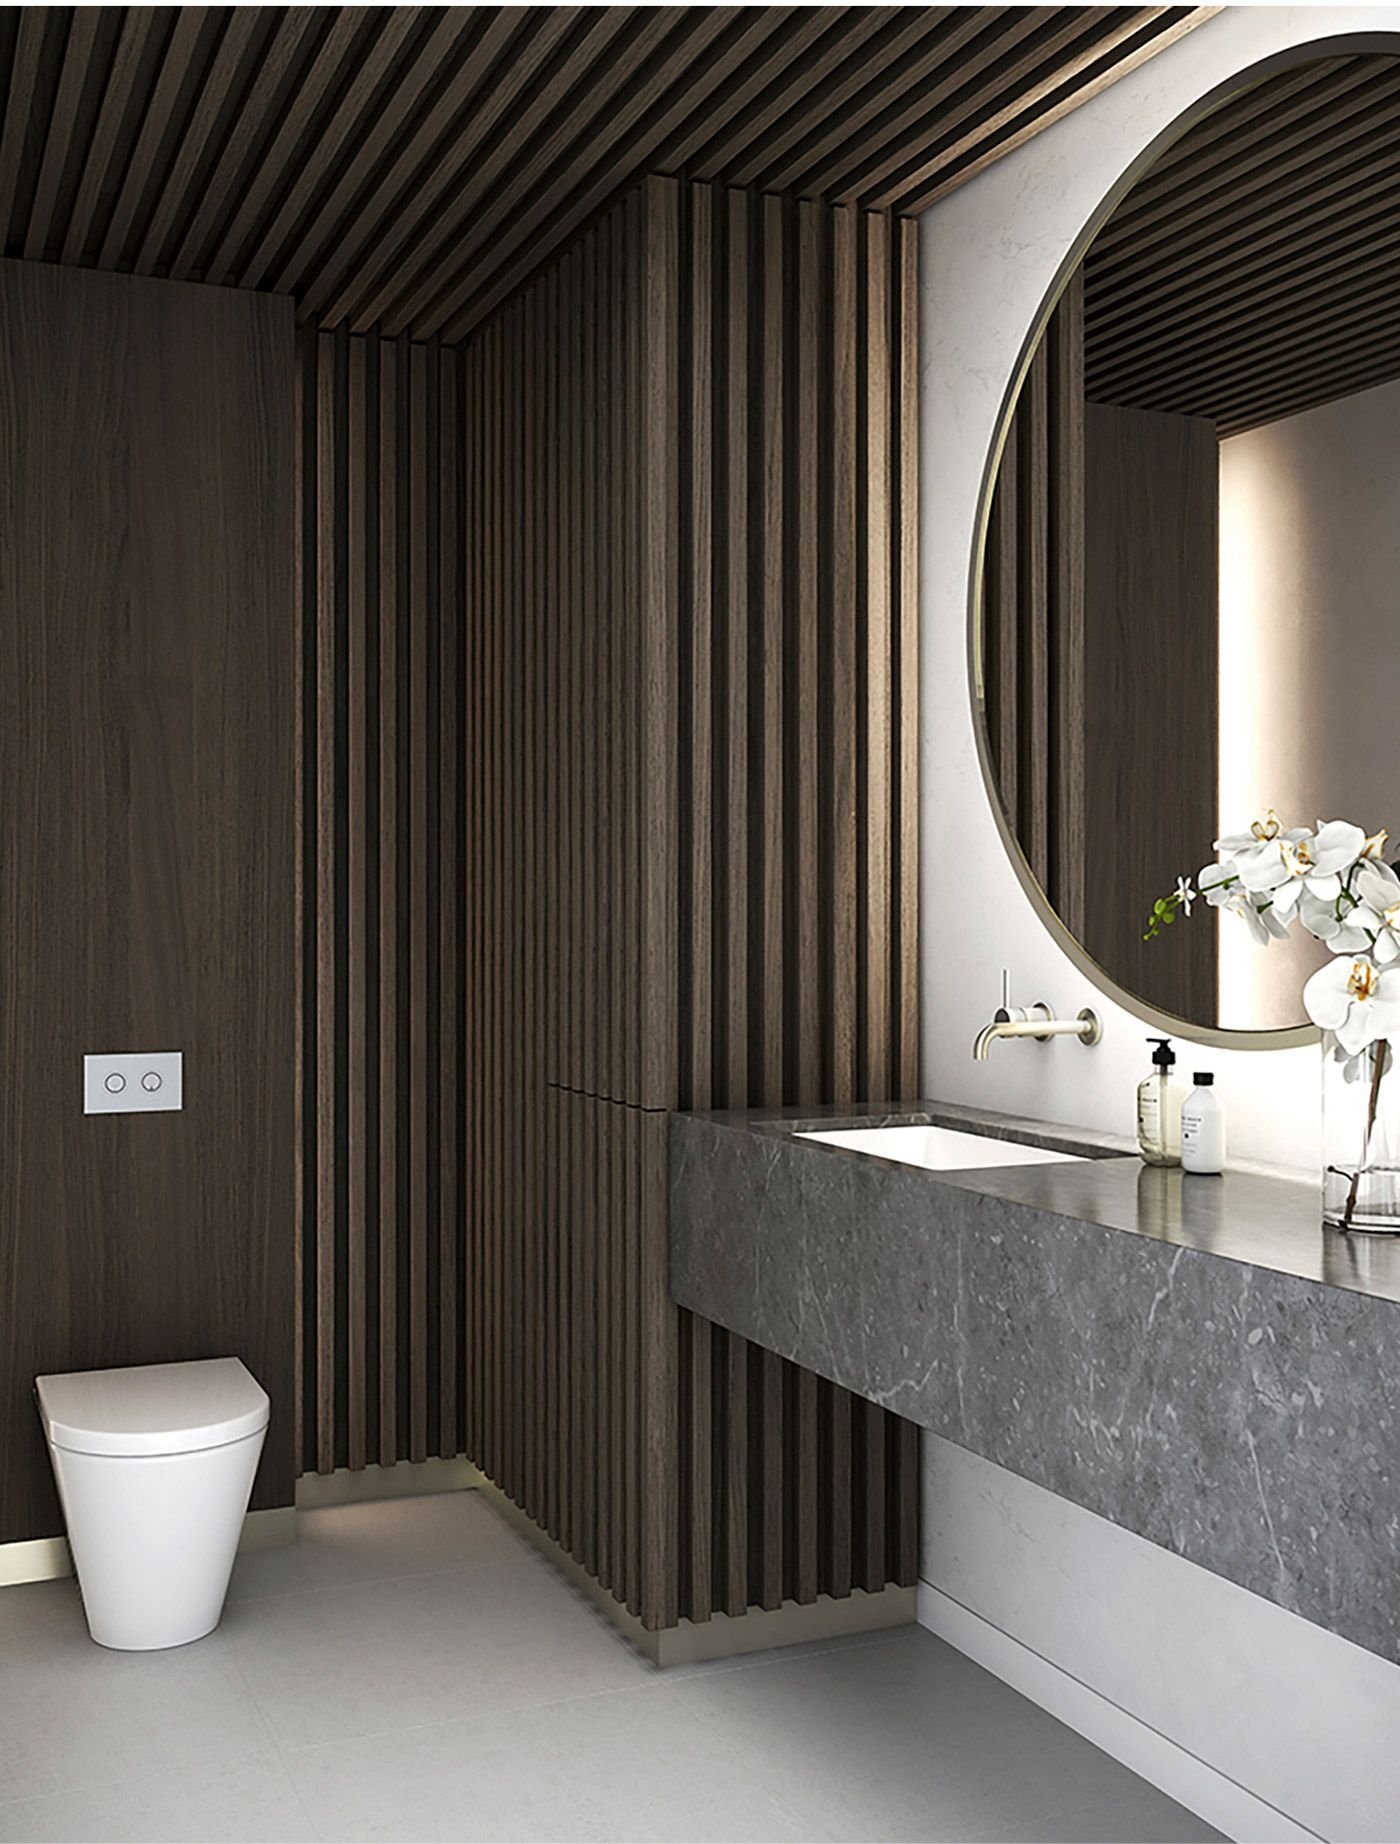 Best bathroom interior extravagance bathrooms like youuve never seen before find the